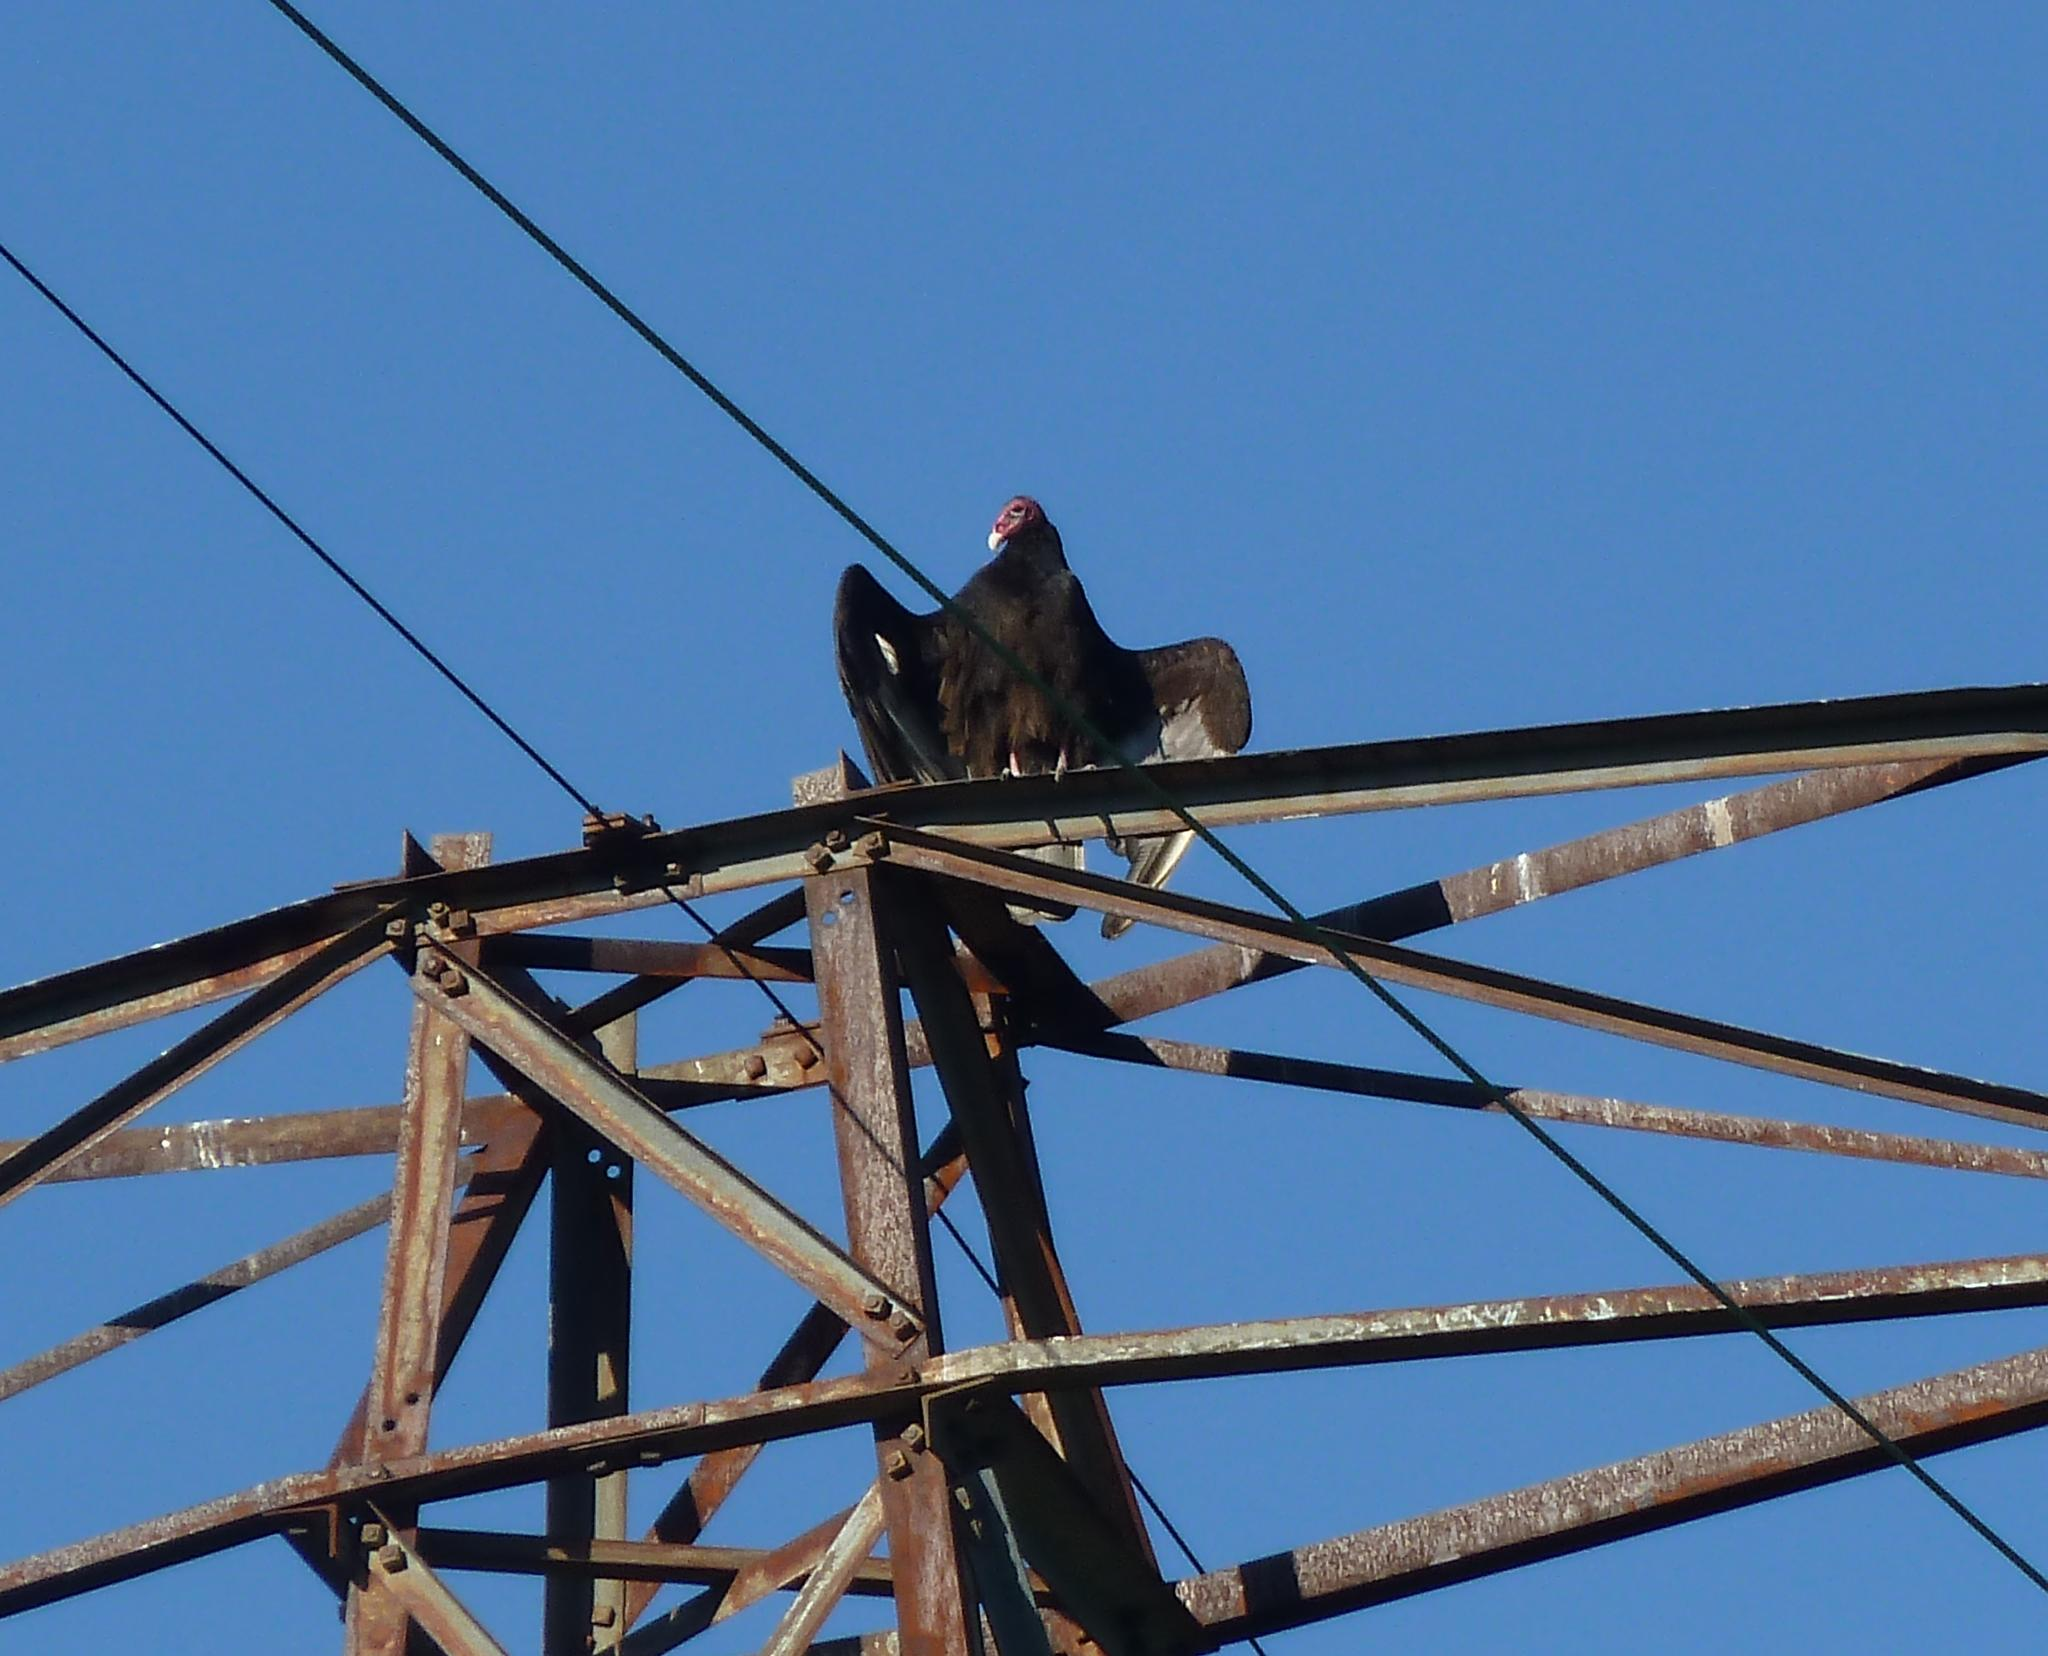 Turkey vulture enjoying the sun.